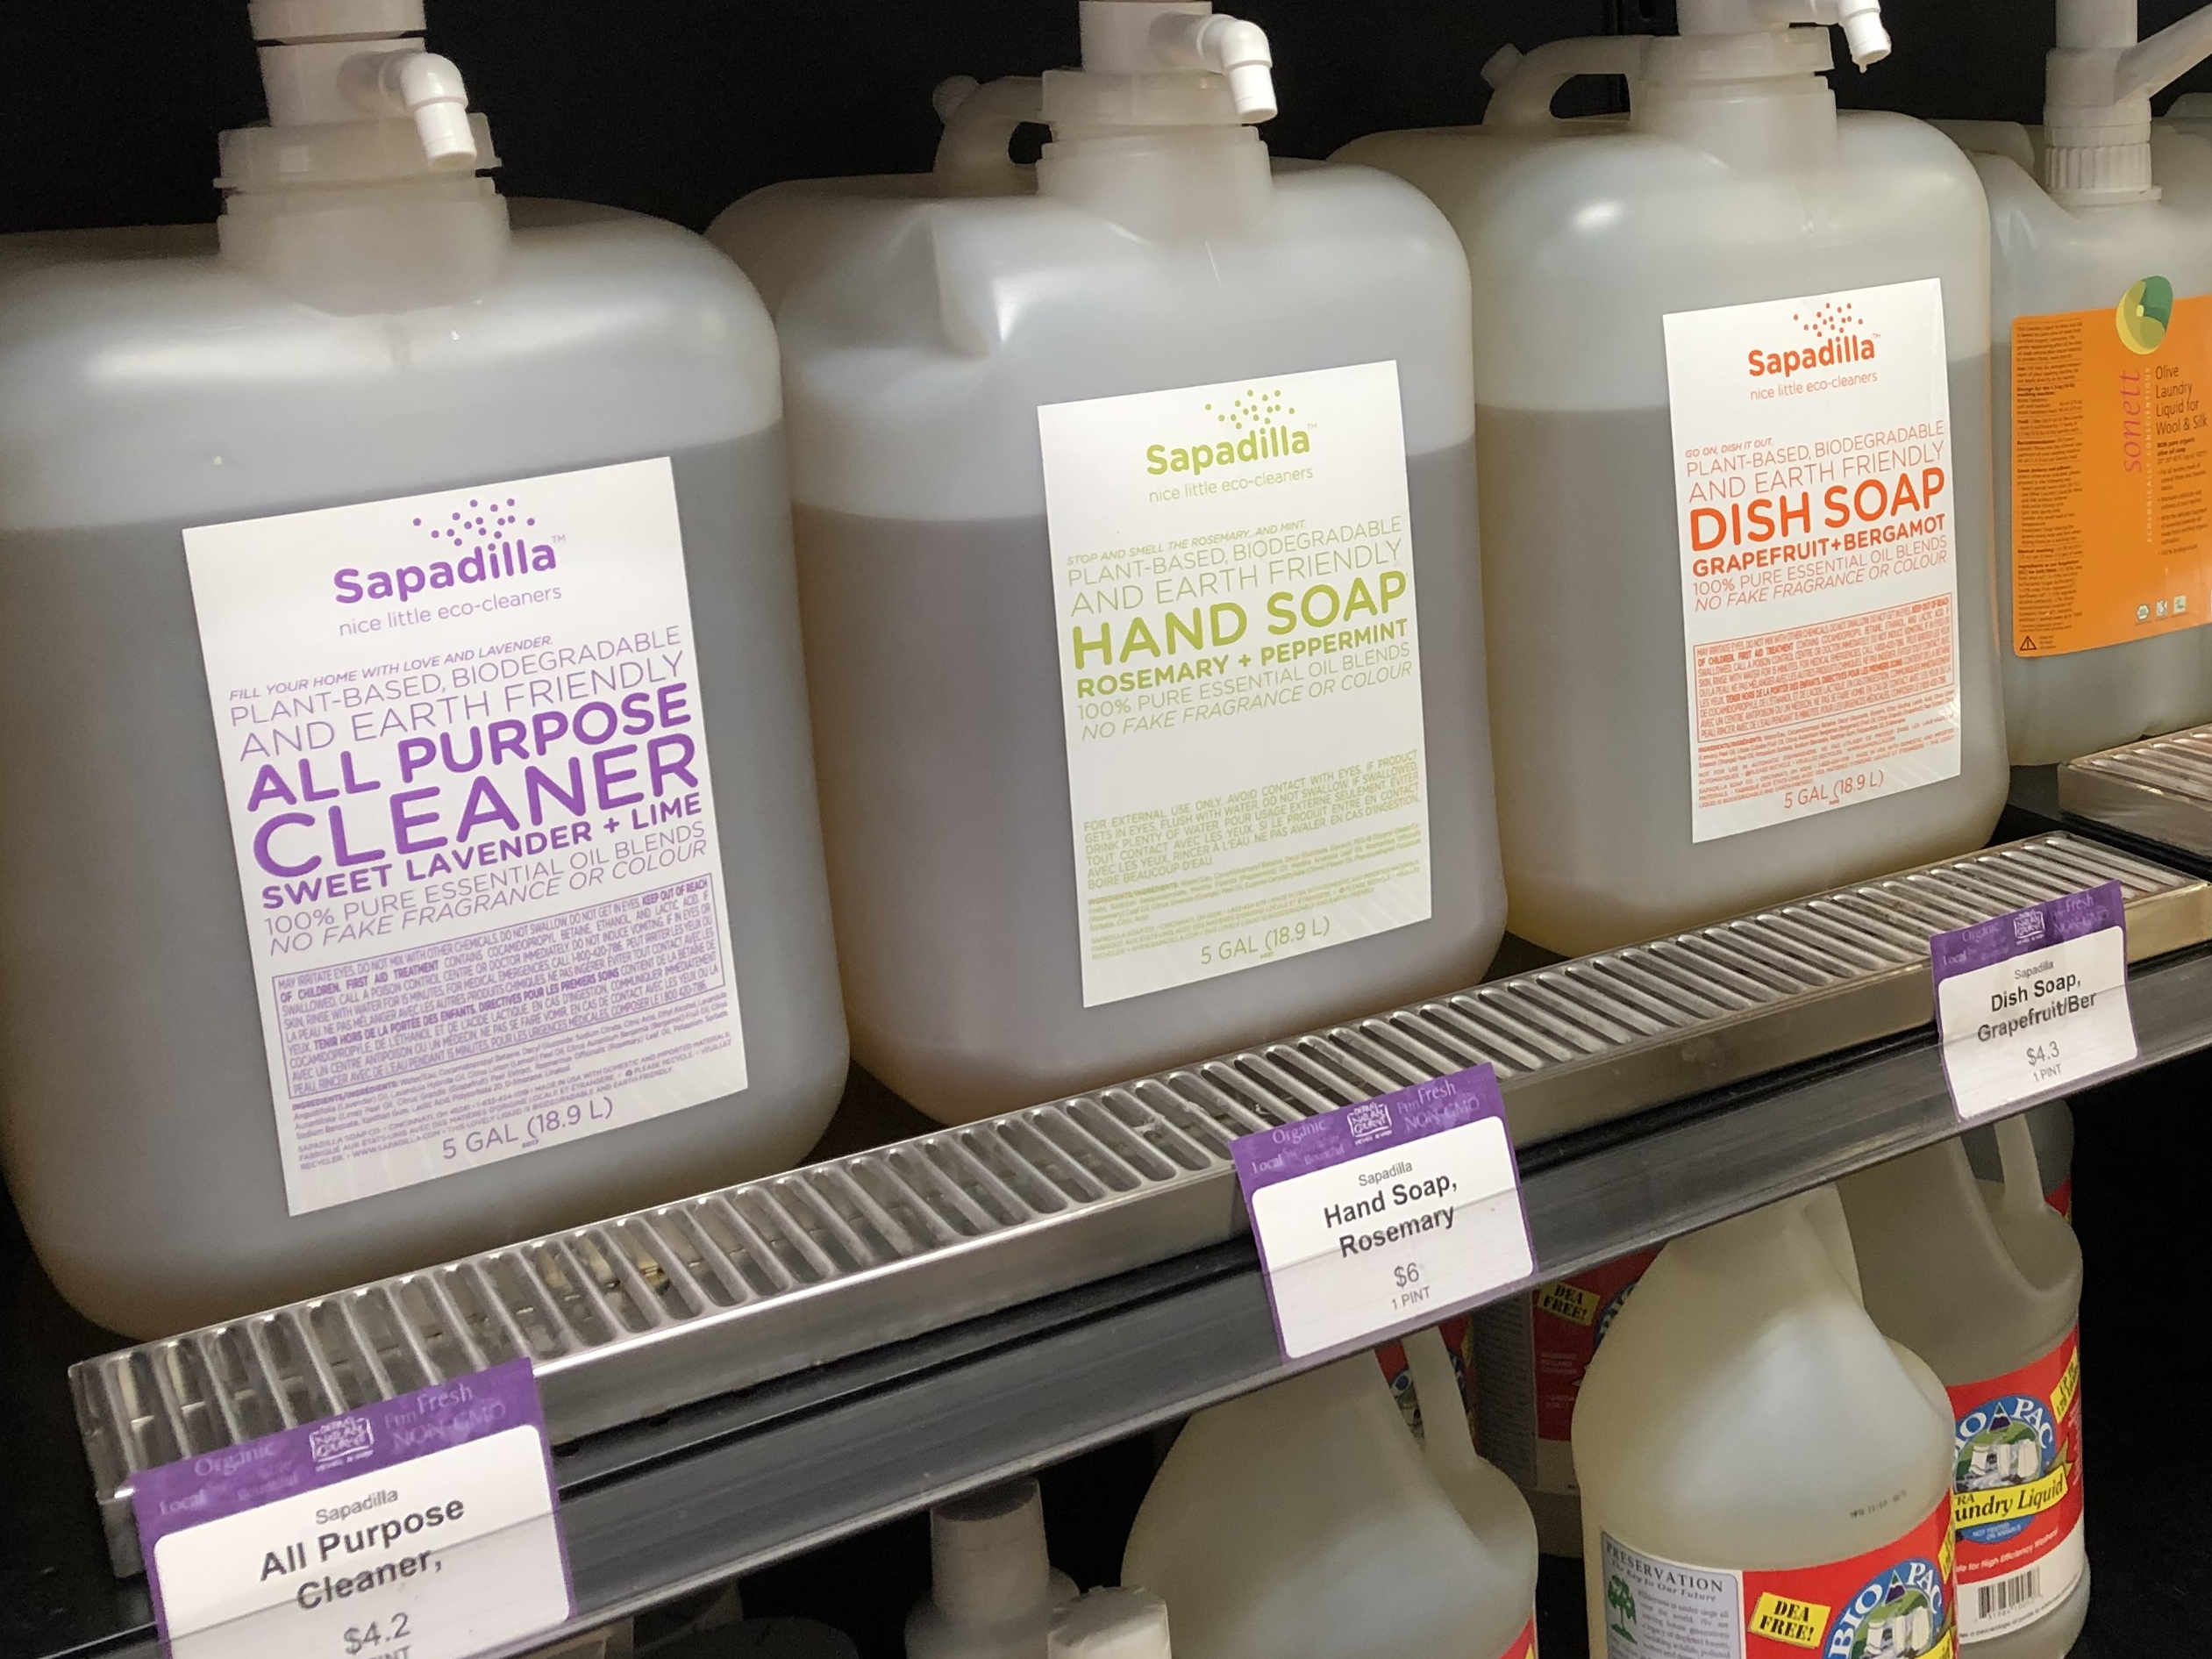 022320-fill-your-own-soap-bottle